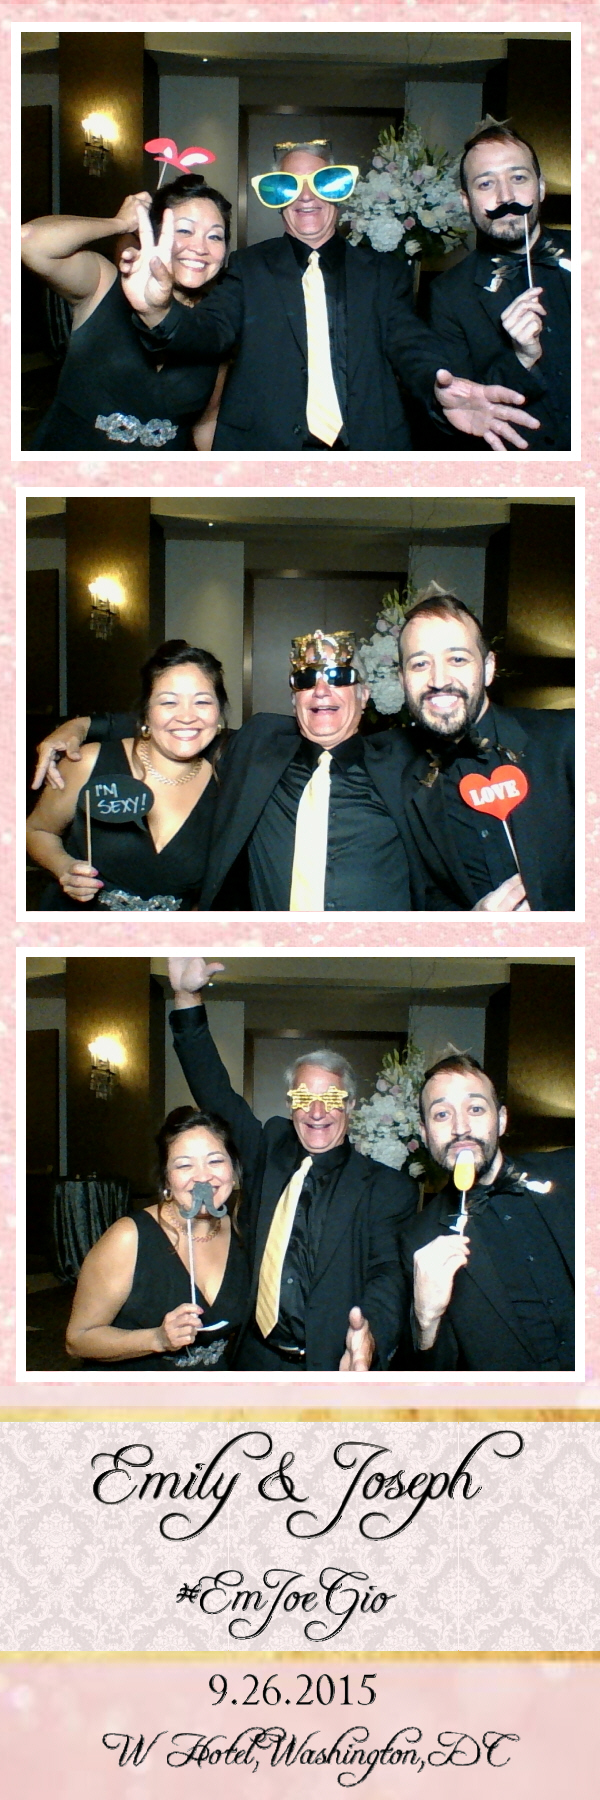 Guest House Events Photo Booth E&J (40).jpg